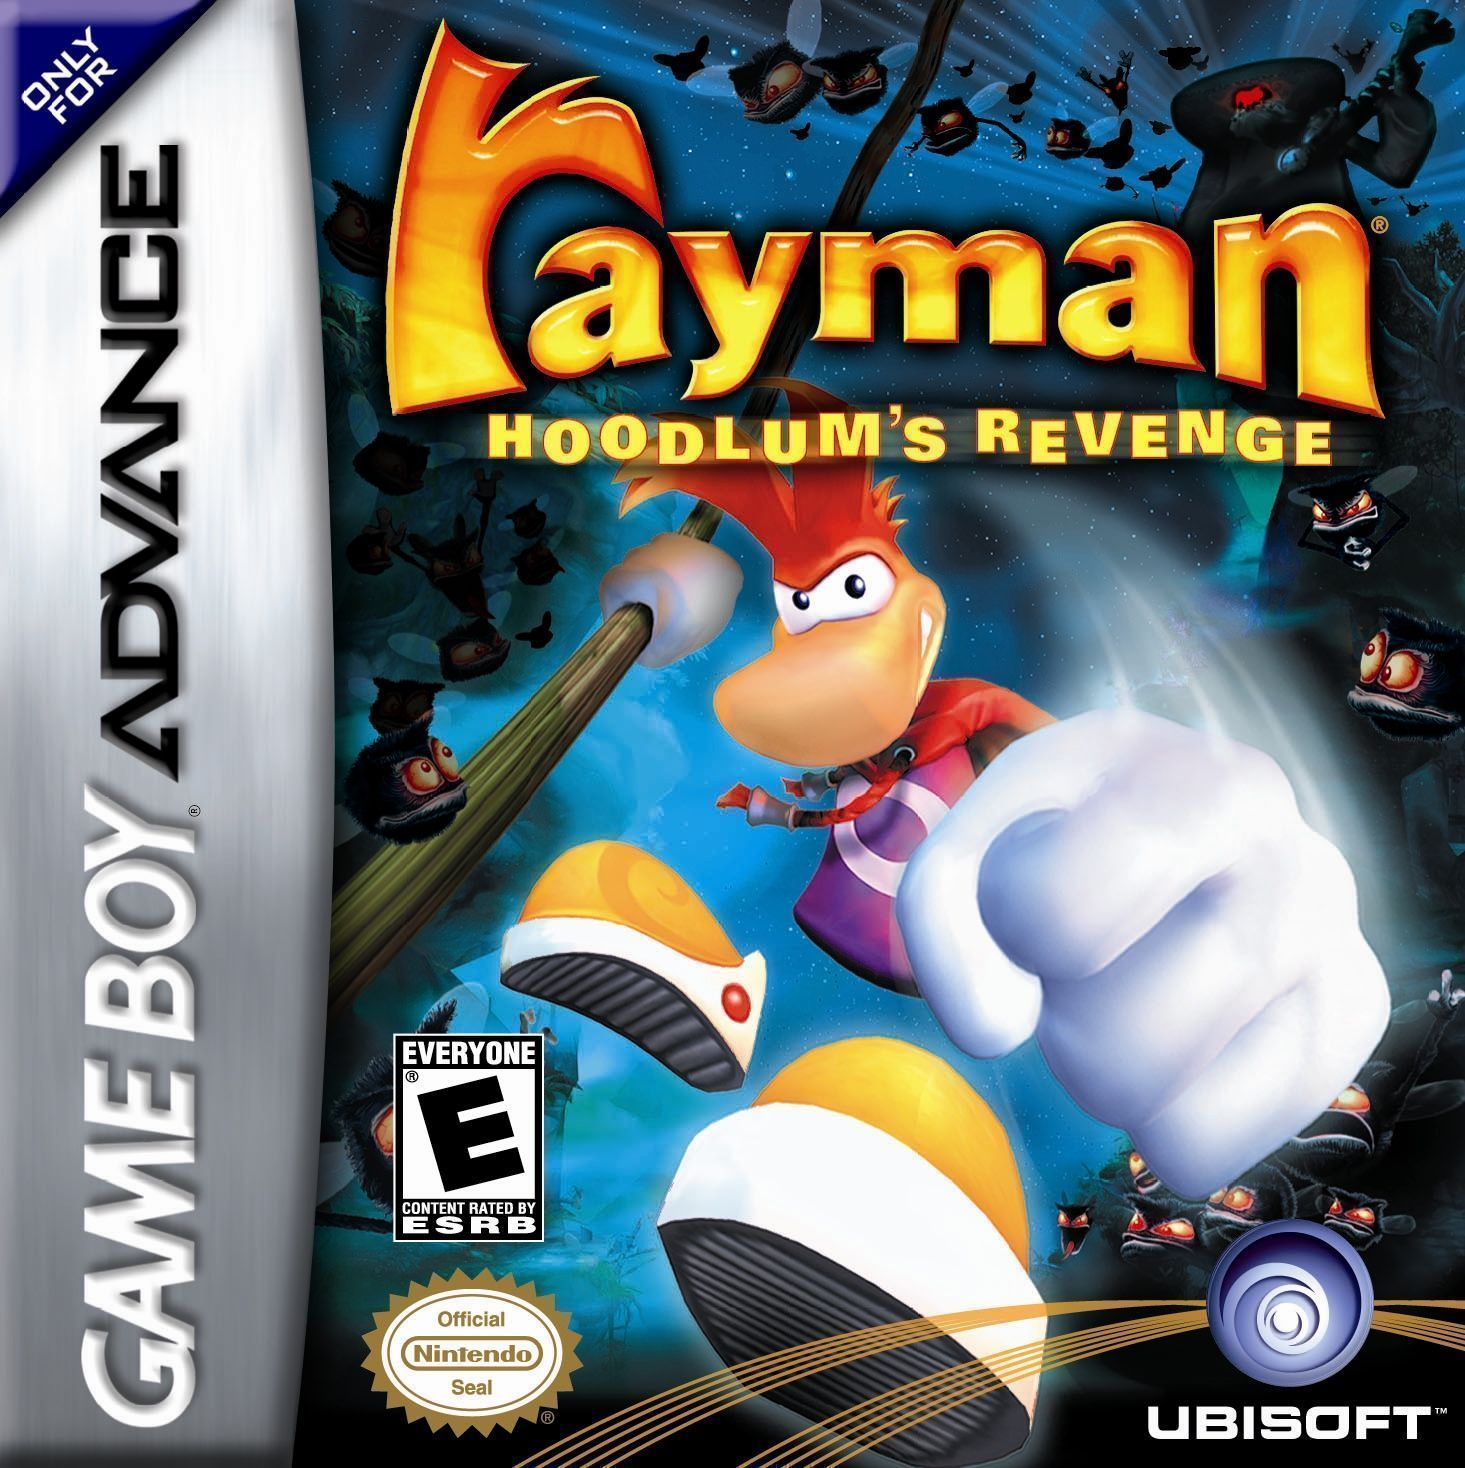 Rayman Hoodlum S Revenge Rom Gameboy Advance Gba Emulator Games